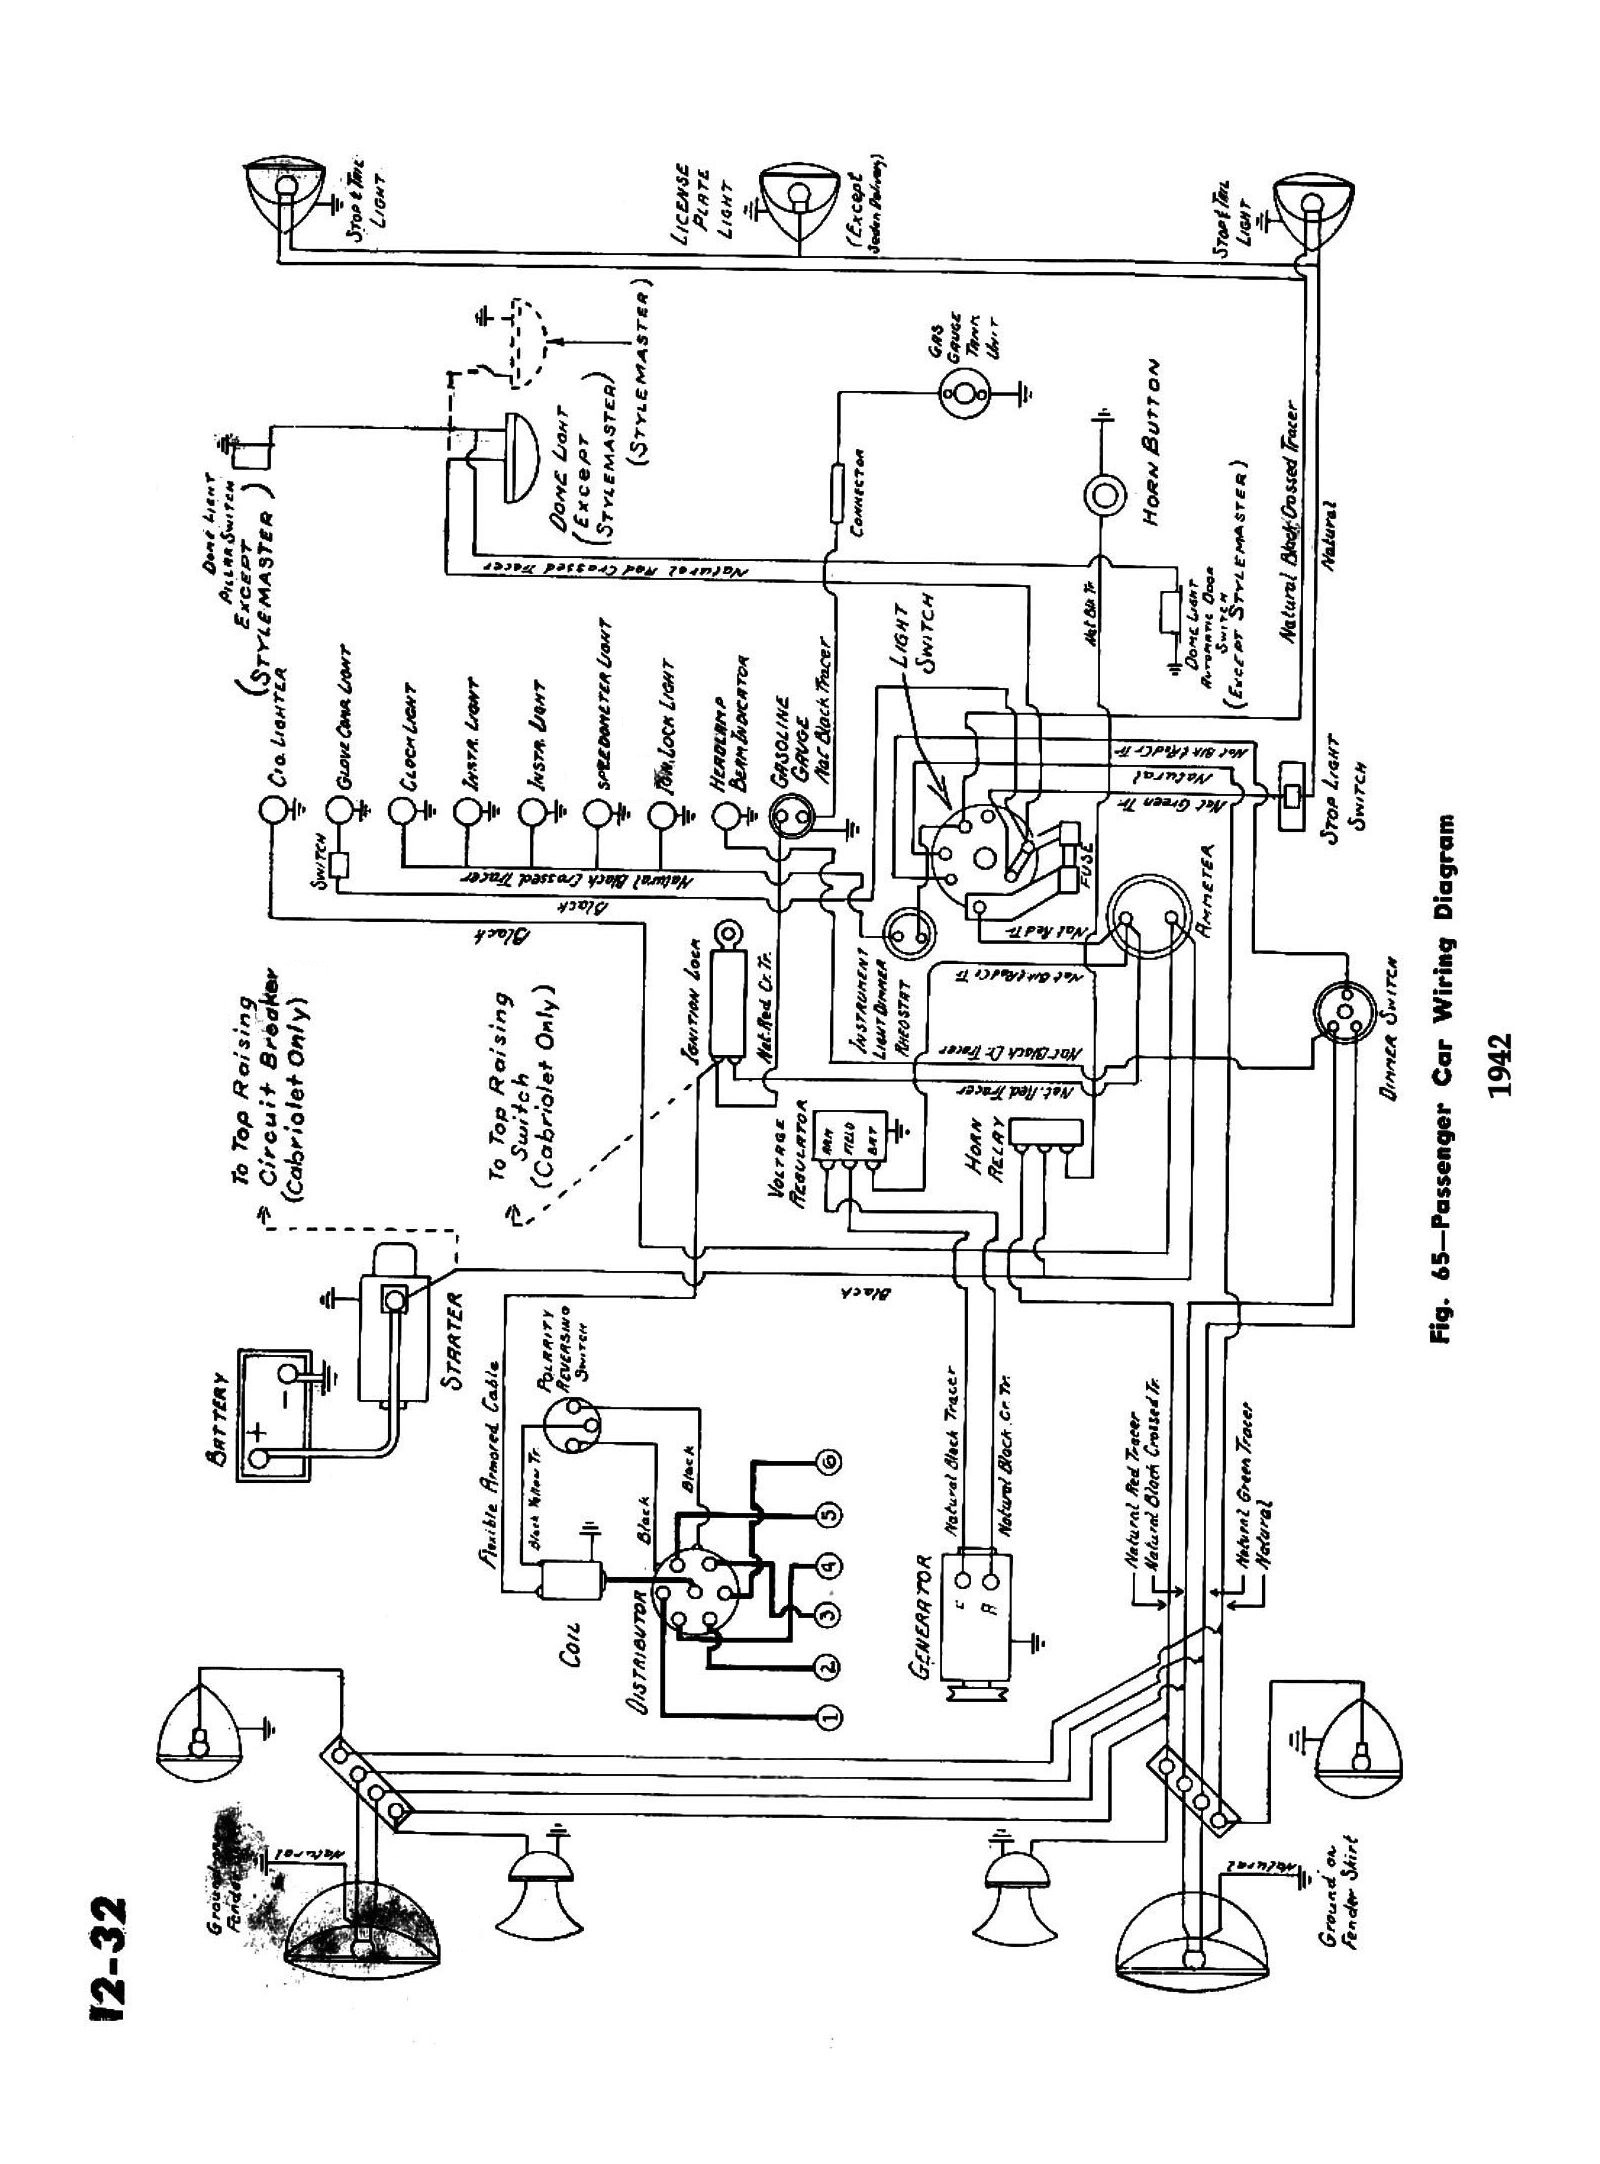 1953 Chevy 150 Wiring Harness Car Fuse Box Wiring Diagram For Wiring Diagram Schematics